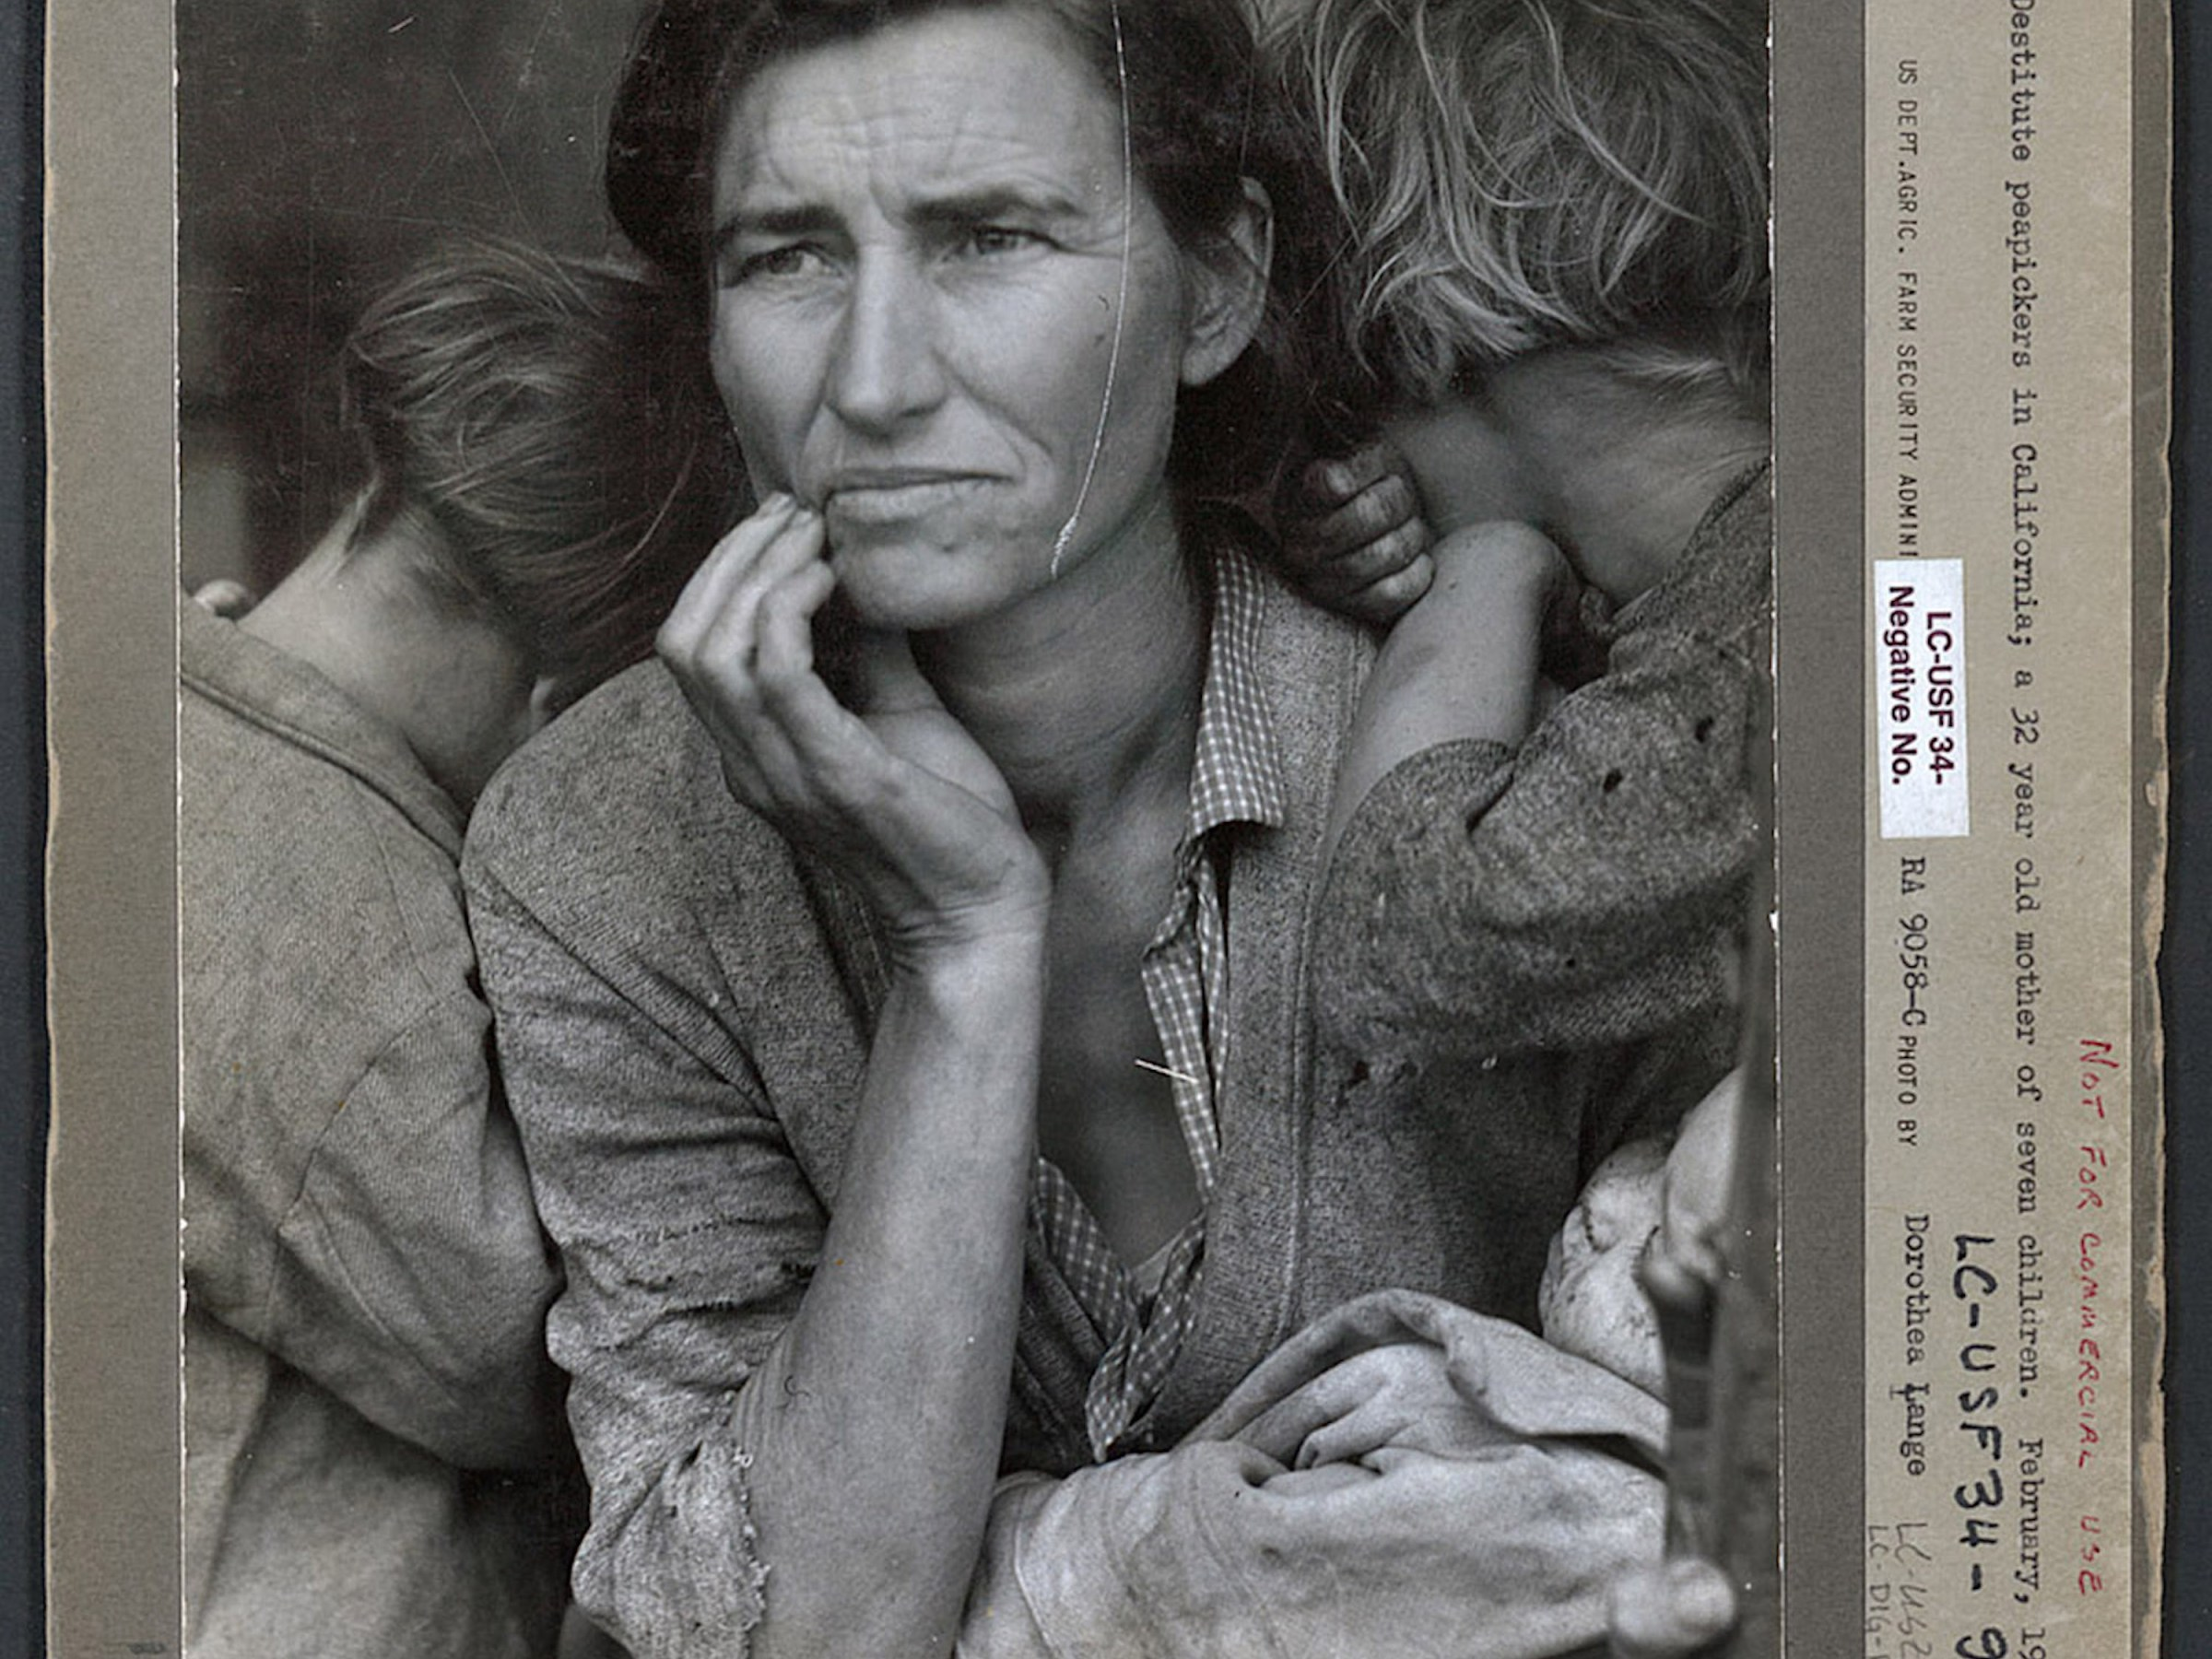 Migrant Mother, Dorothea Lange (1936)